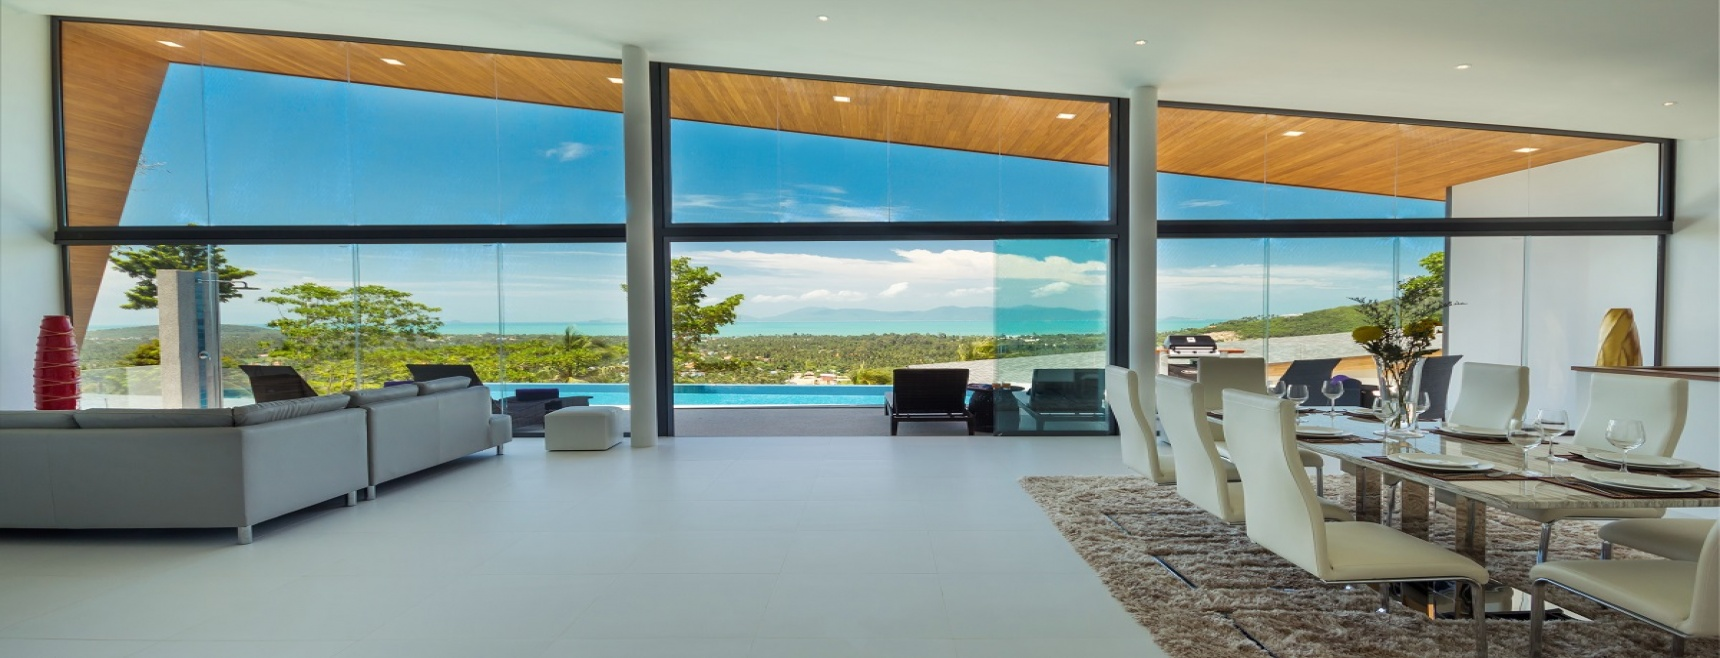 Azur Villas, Koh Samui, luxury villas, sea view